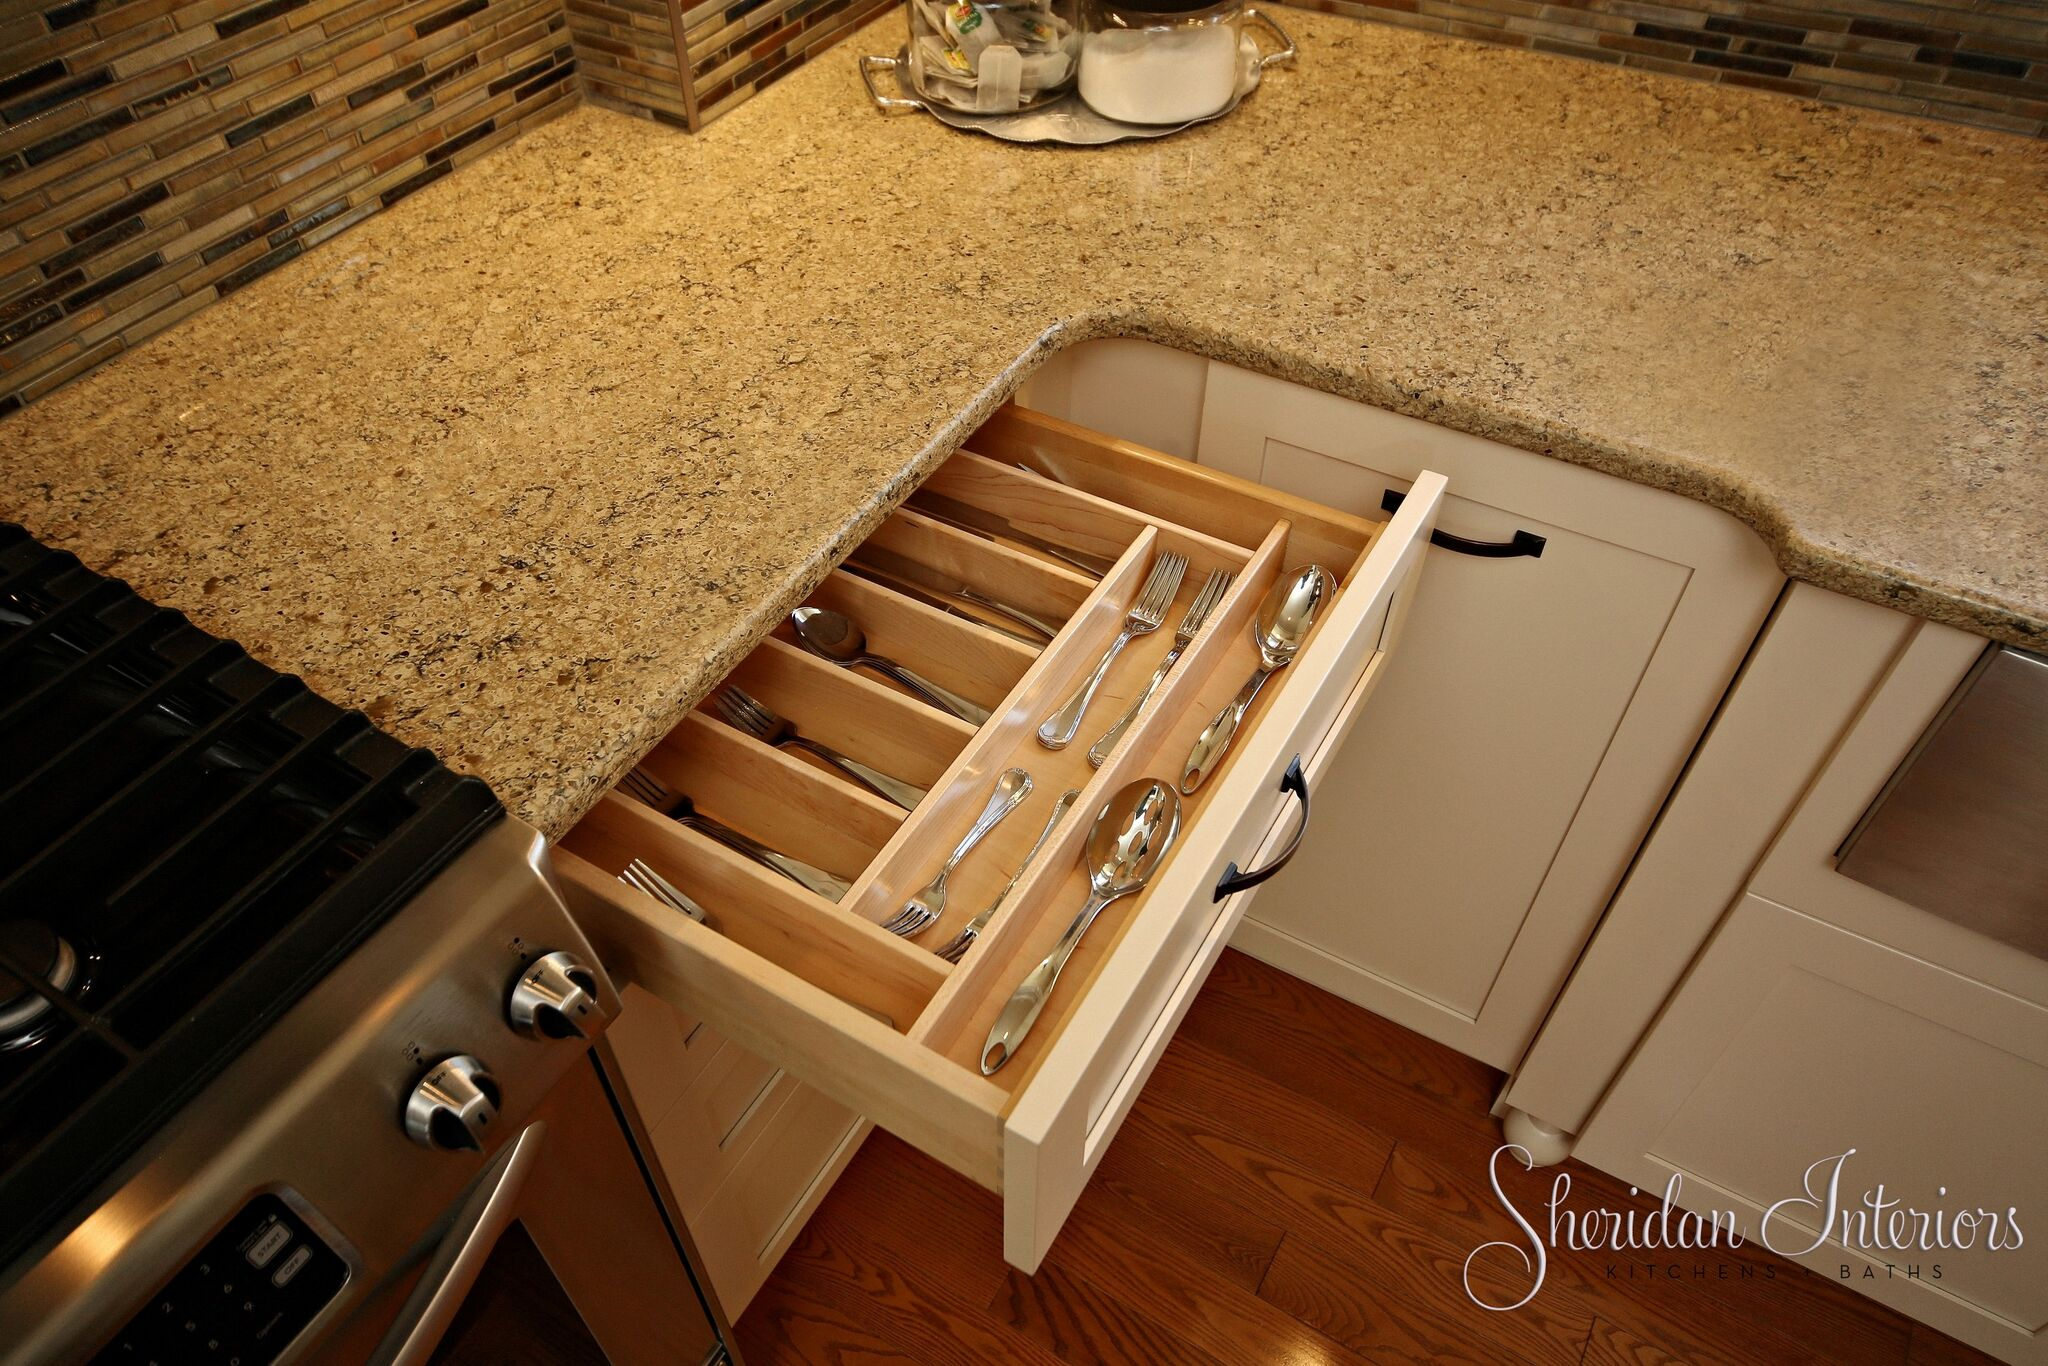 Country Kitchen with Wood Utensil Drawer - Sheridan Interiors